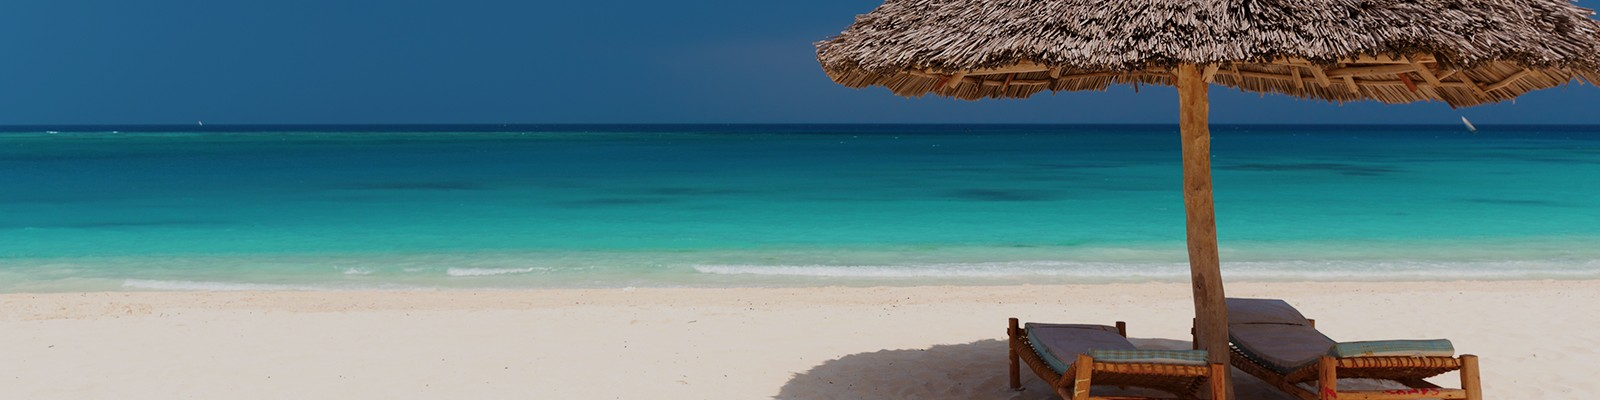 zanzibar honeymoon header